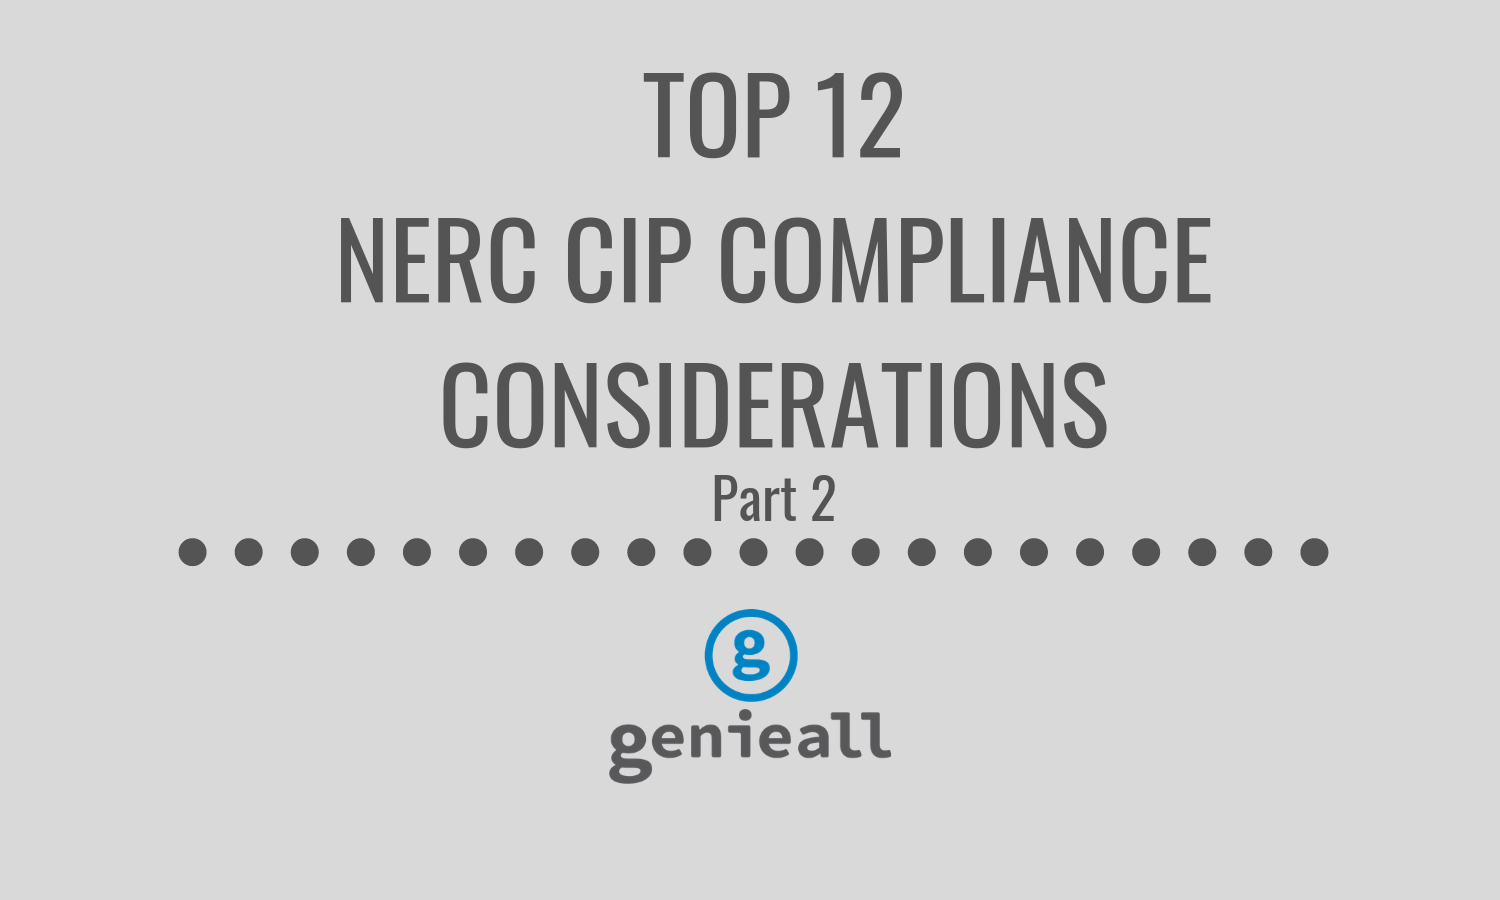 top 12 nerc cip compliance considerations